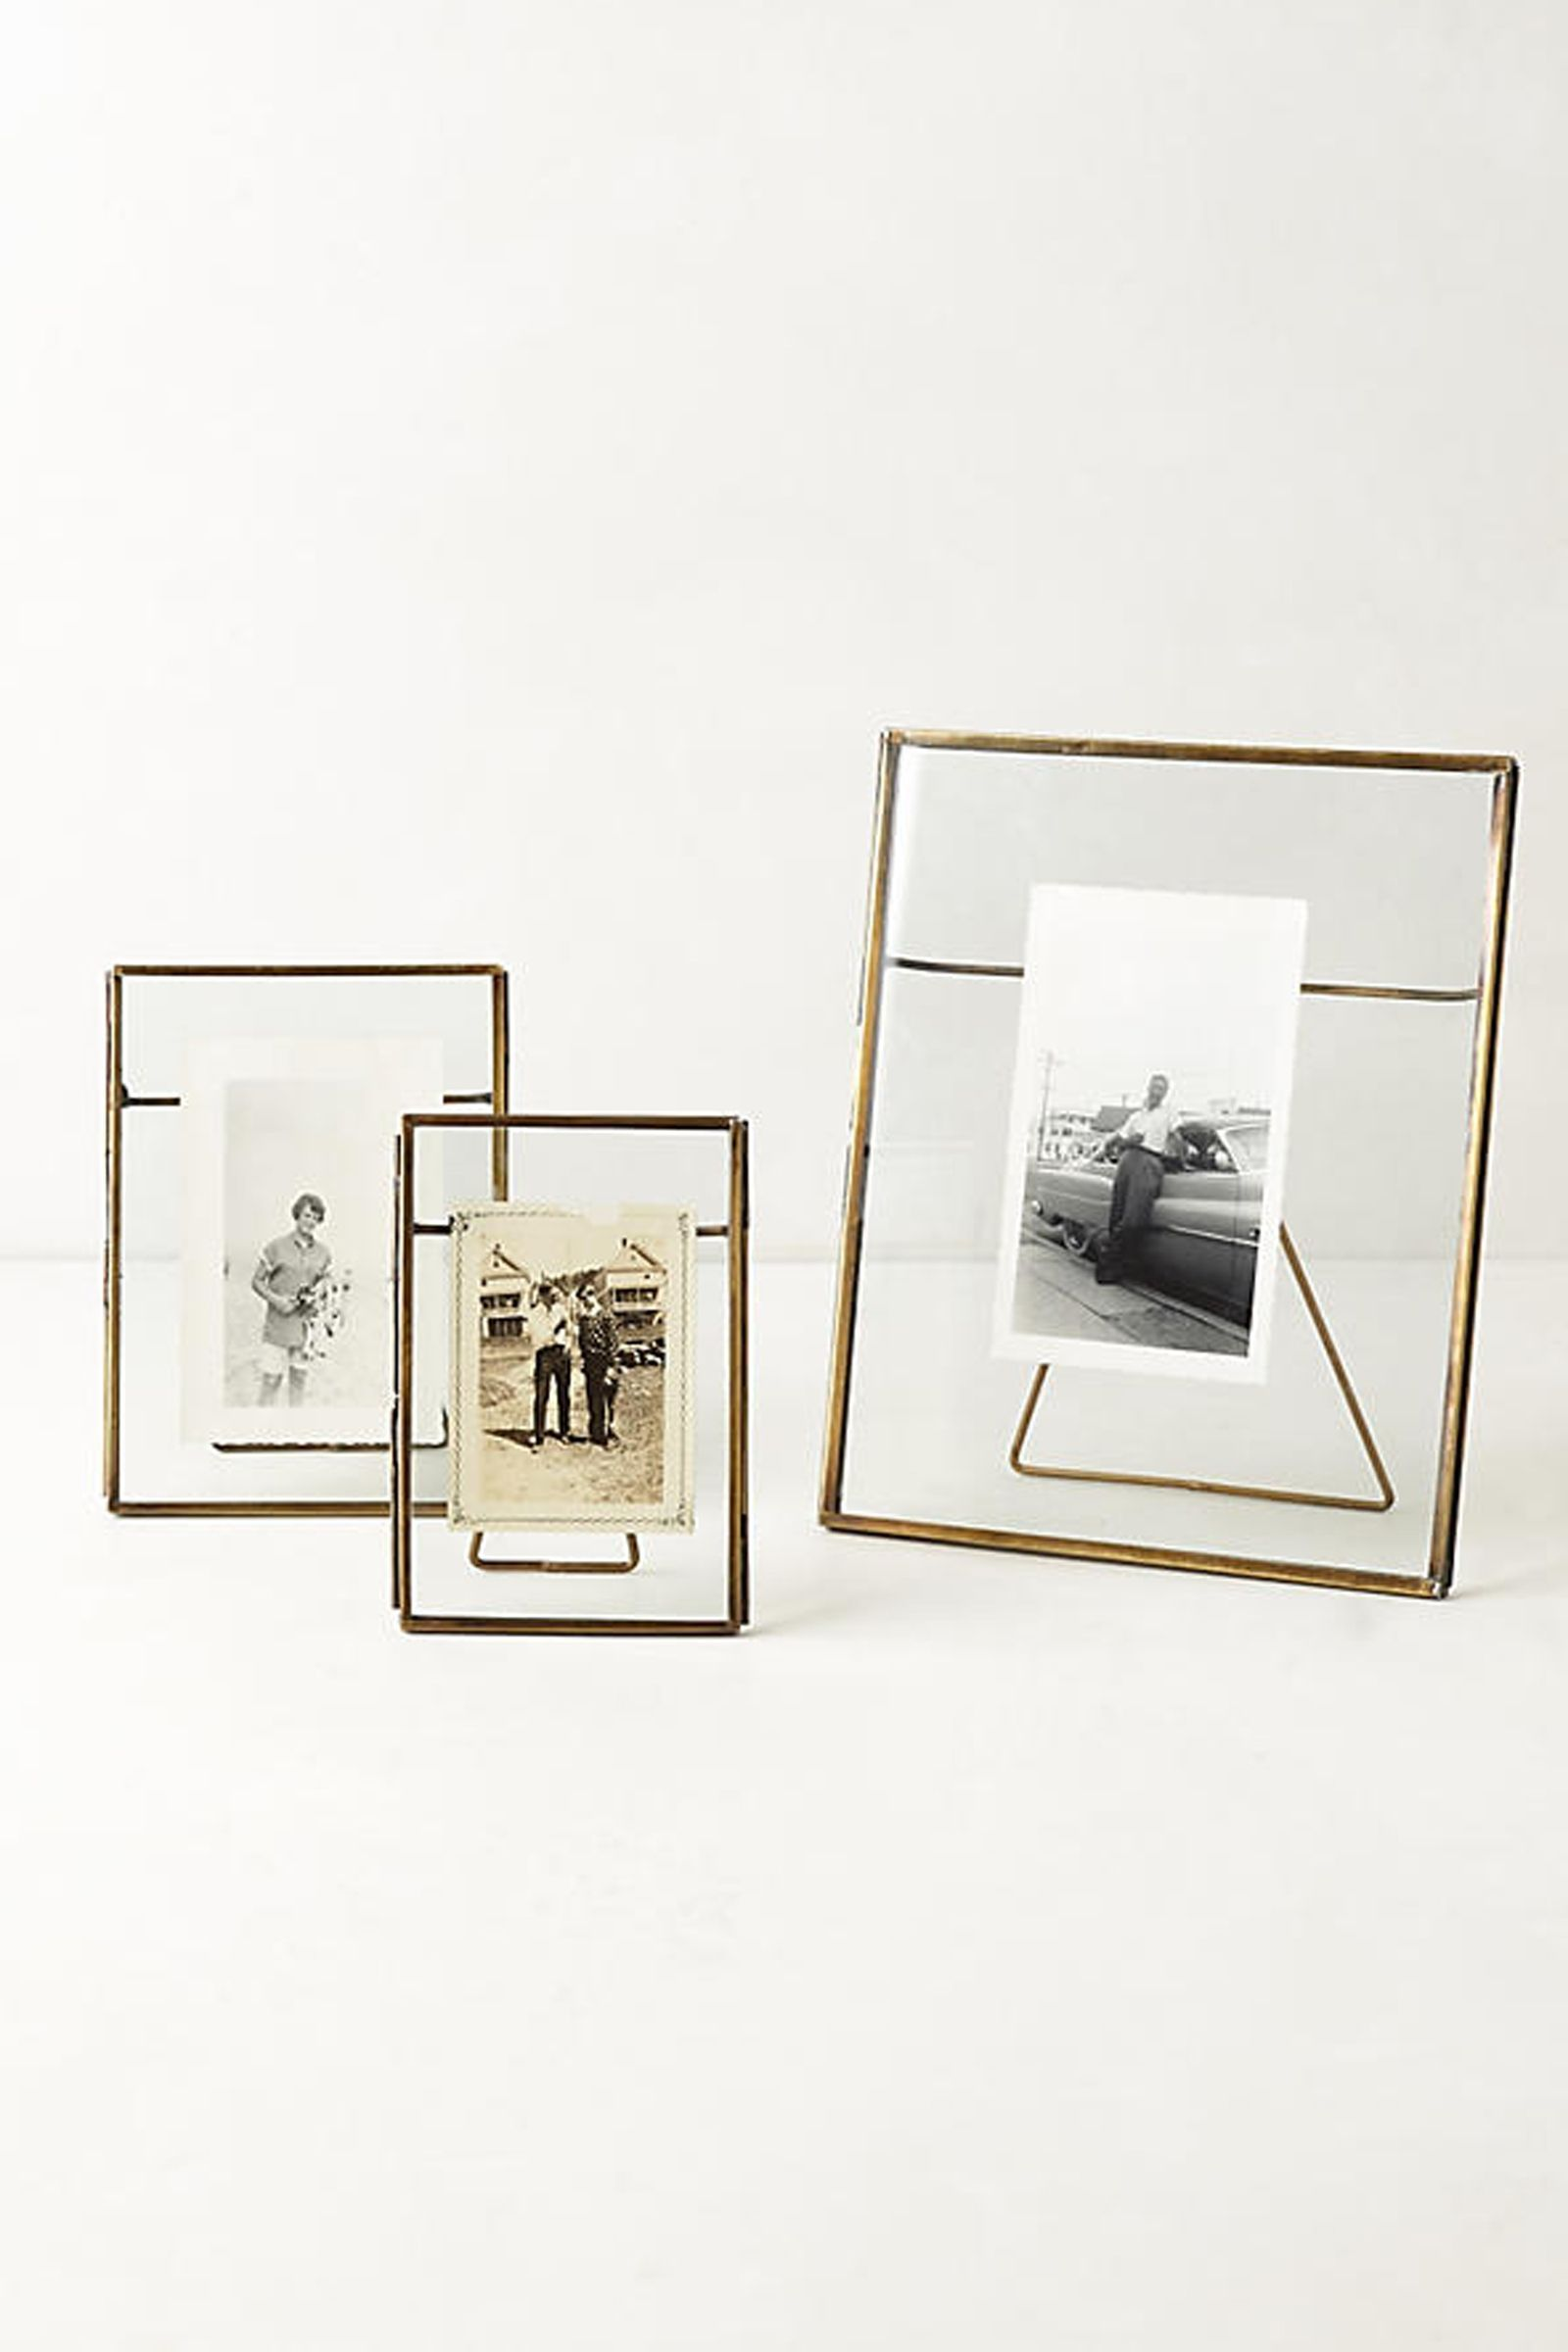 Creative Anniversary Gifts Any Guy Would Love With Images